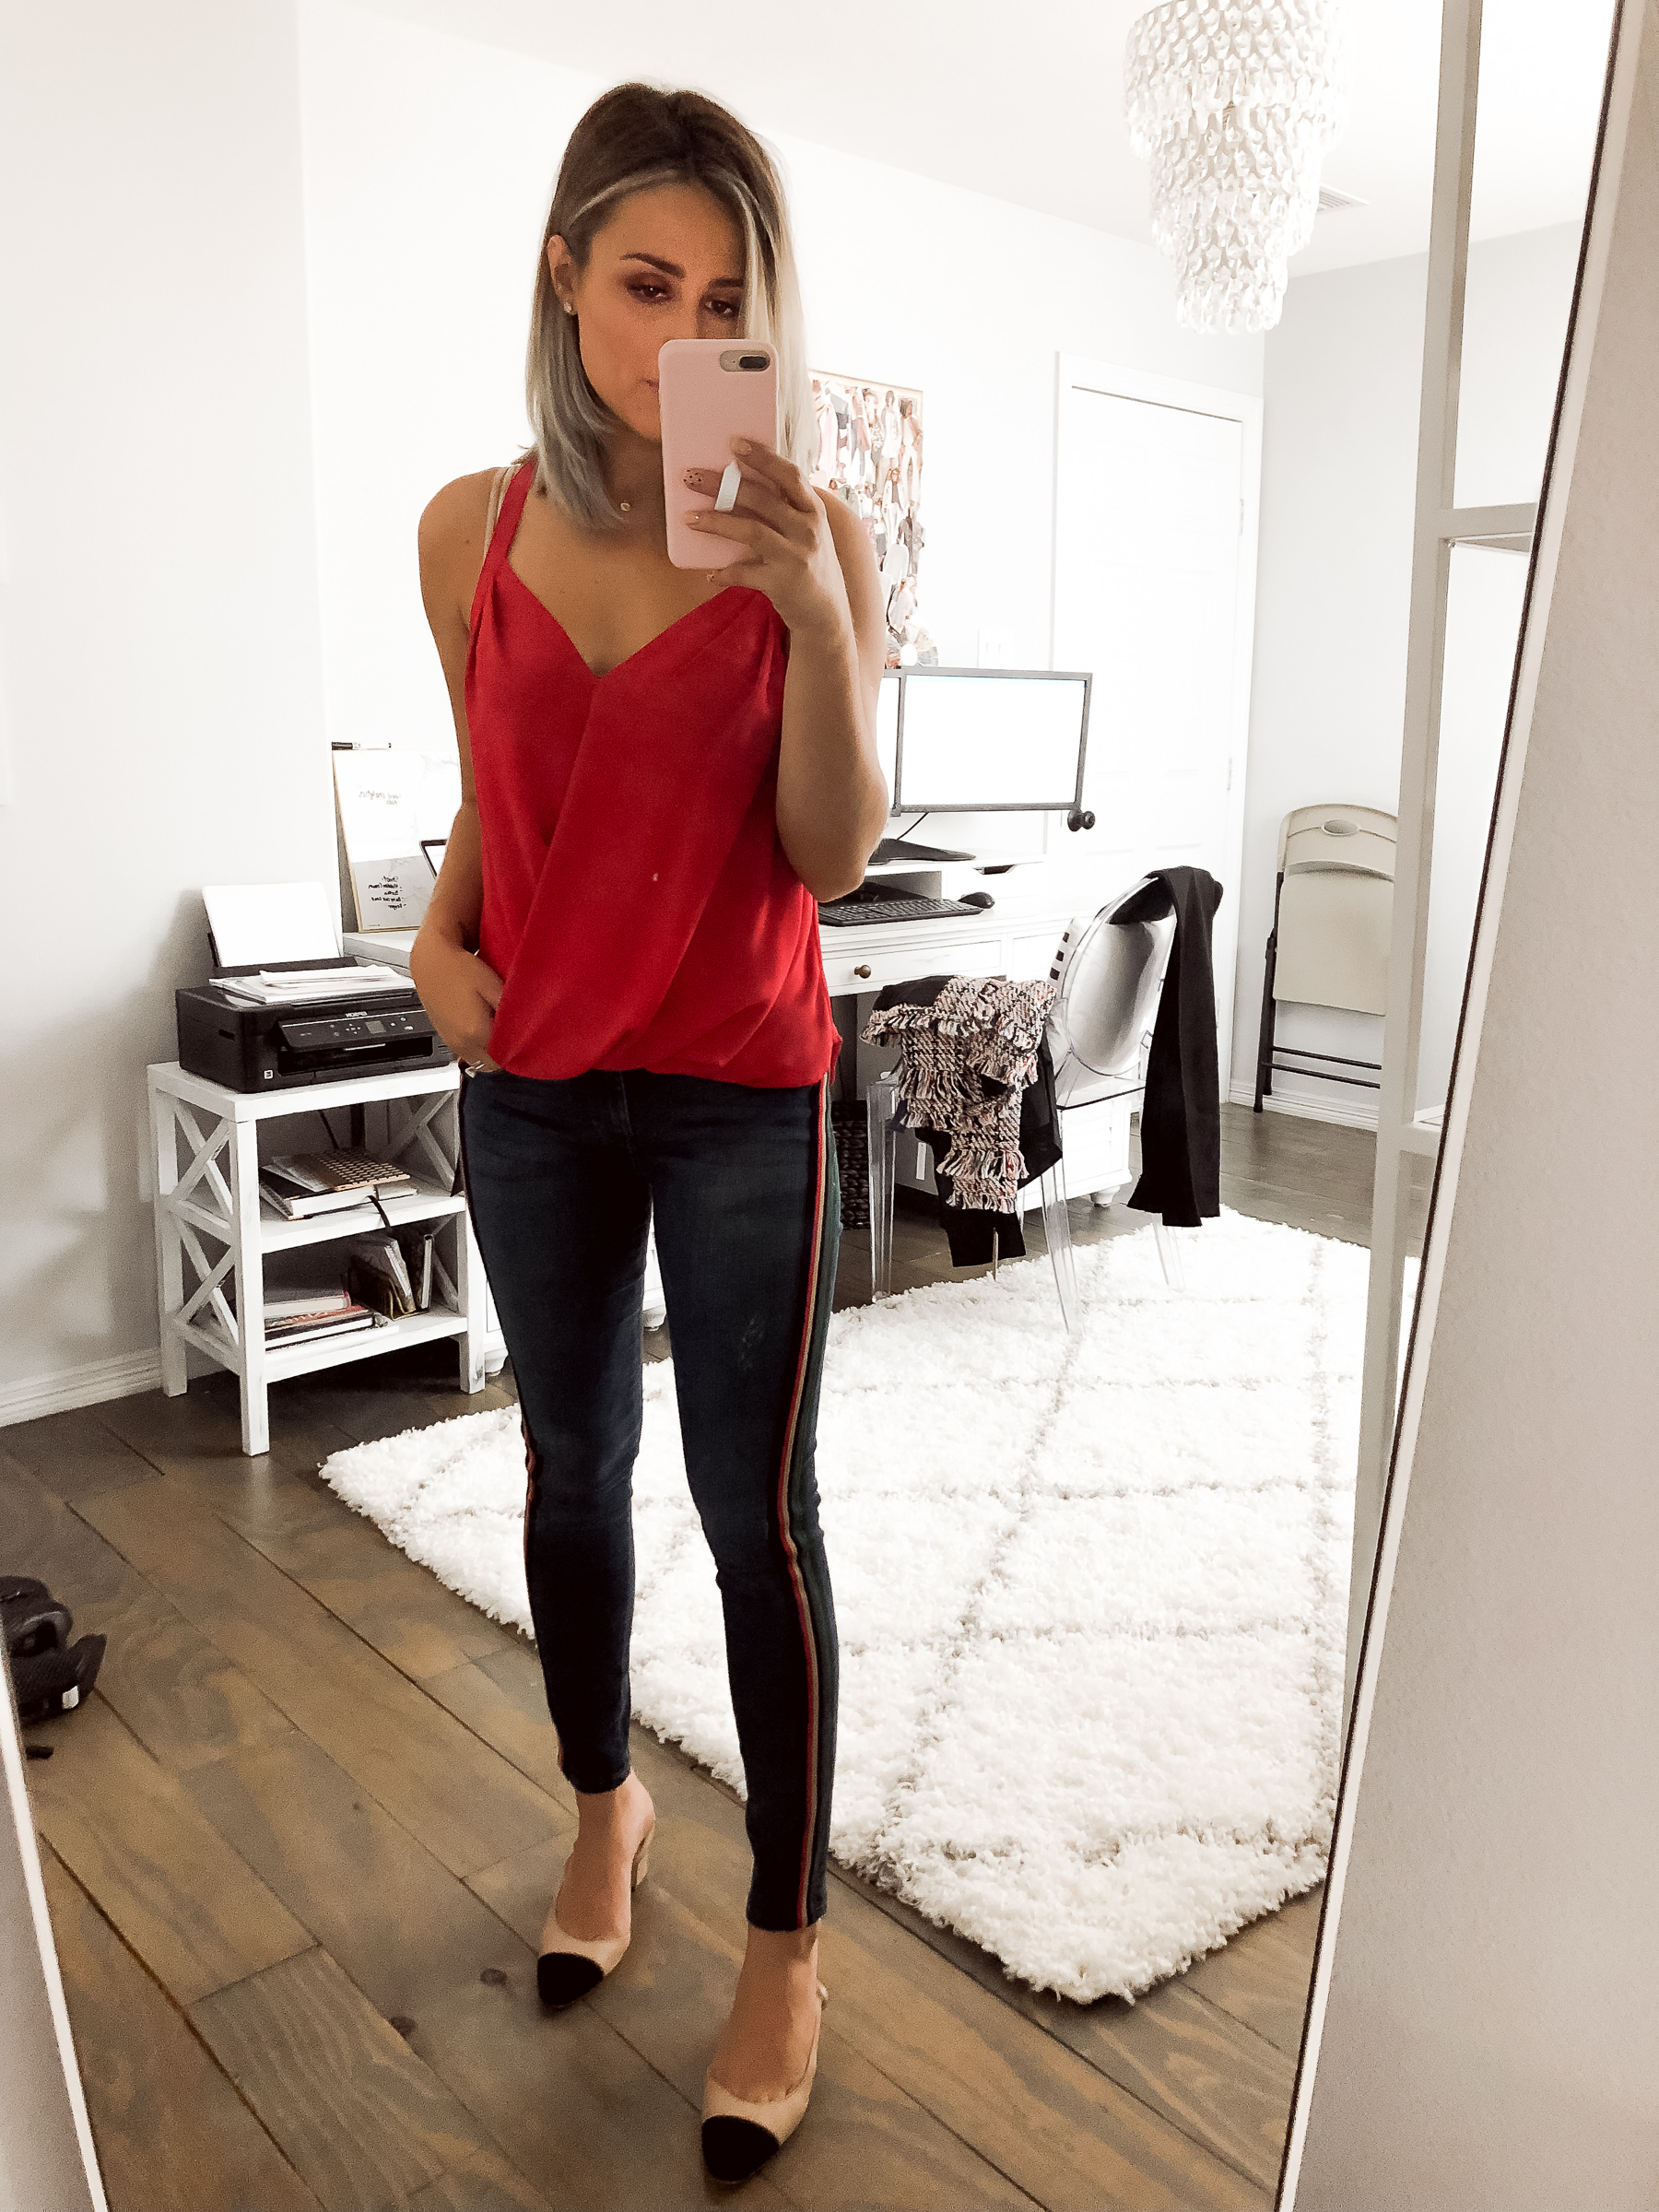 Houston fashion blogger Uptown with Elly Brown shares her Instagram Round-Up outfits of what she's worn and talked about. Click here for more!